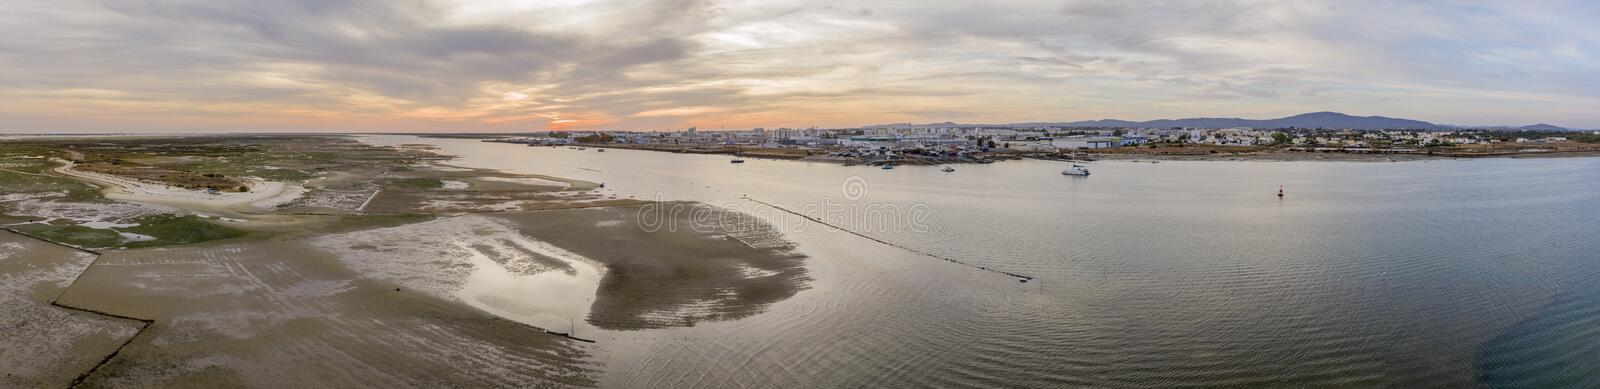 Sunset aerial panoramic seascape view of Olhao dockyard, waterfront to Ria Formosa natural park stock photography